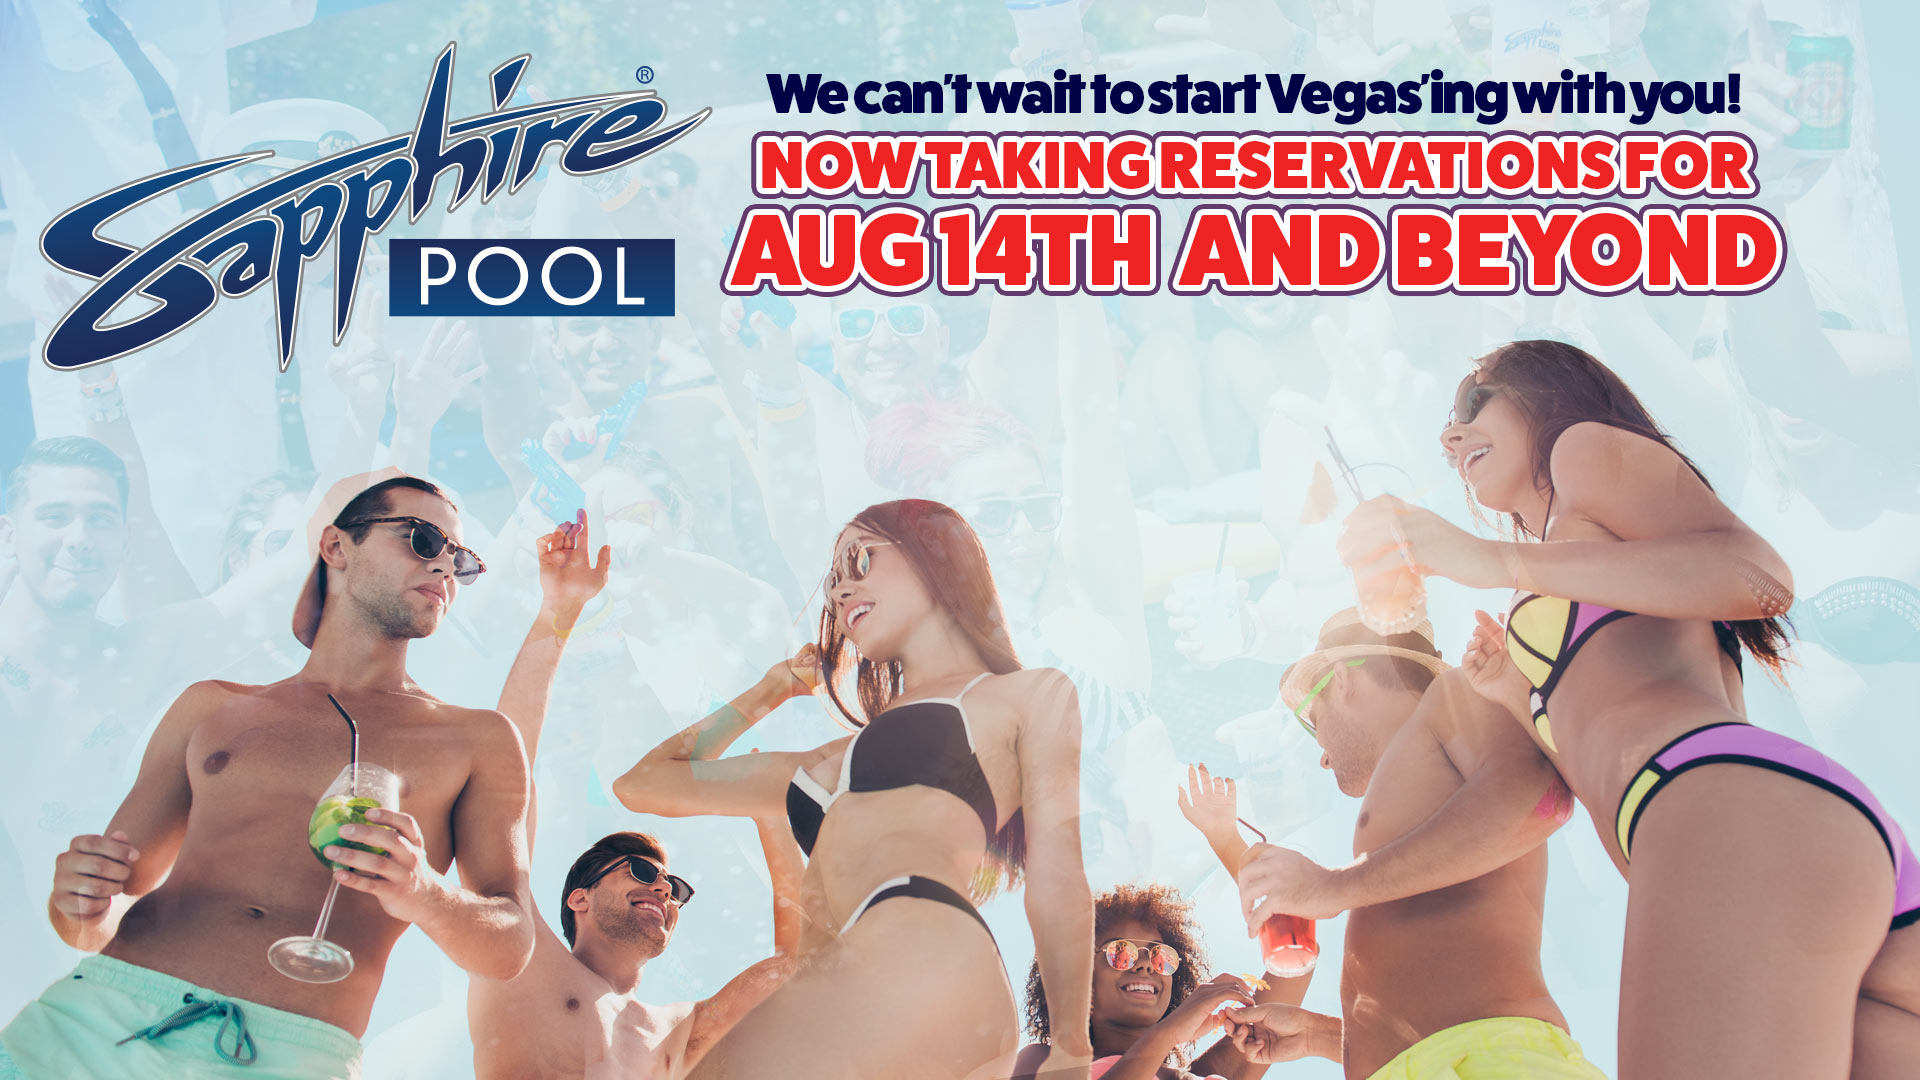 Sapphire Pool Reservations Aug 14 and Beyond